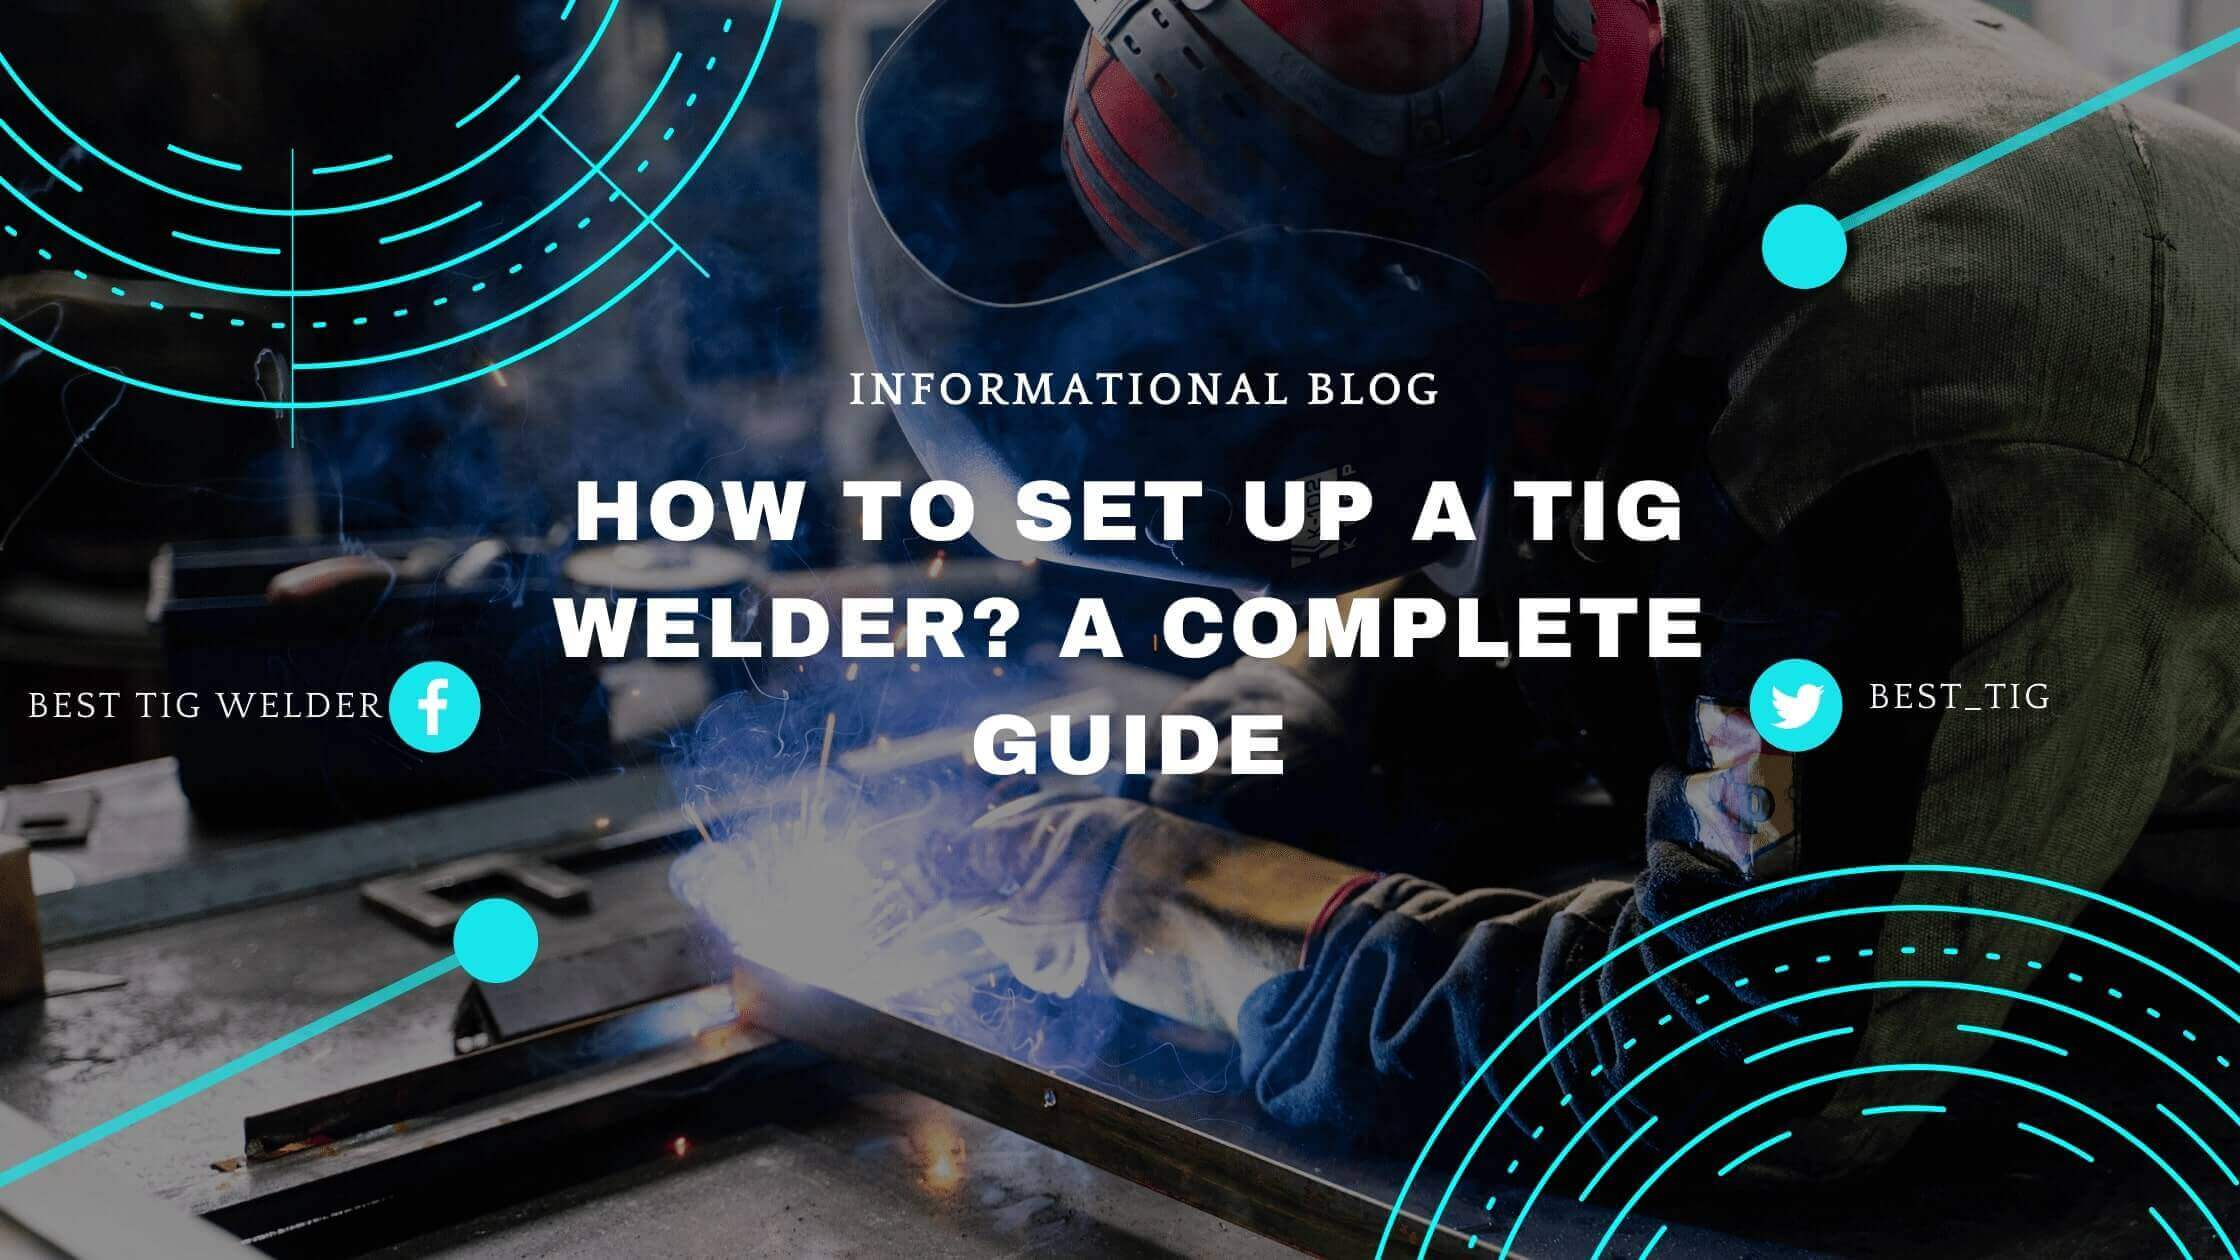 How To Set Up a Tig Welder? A Complete Guide...